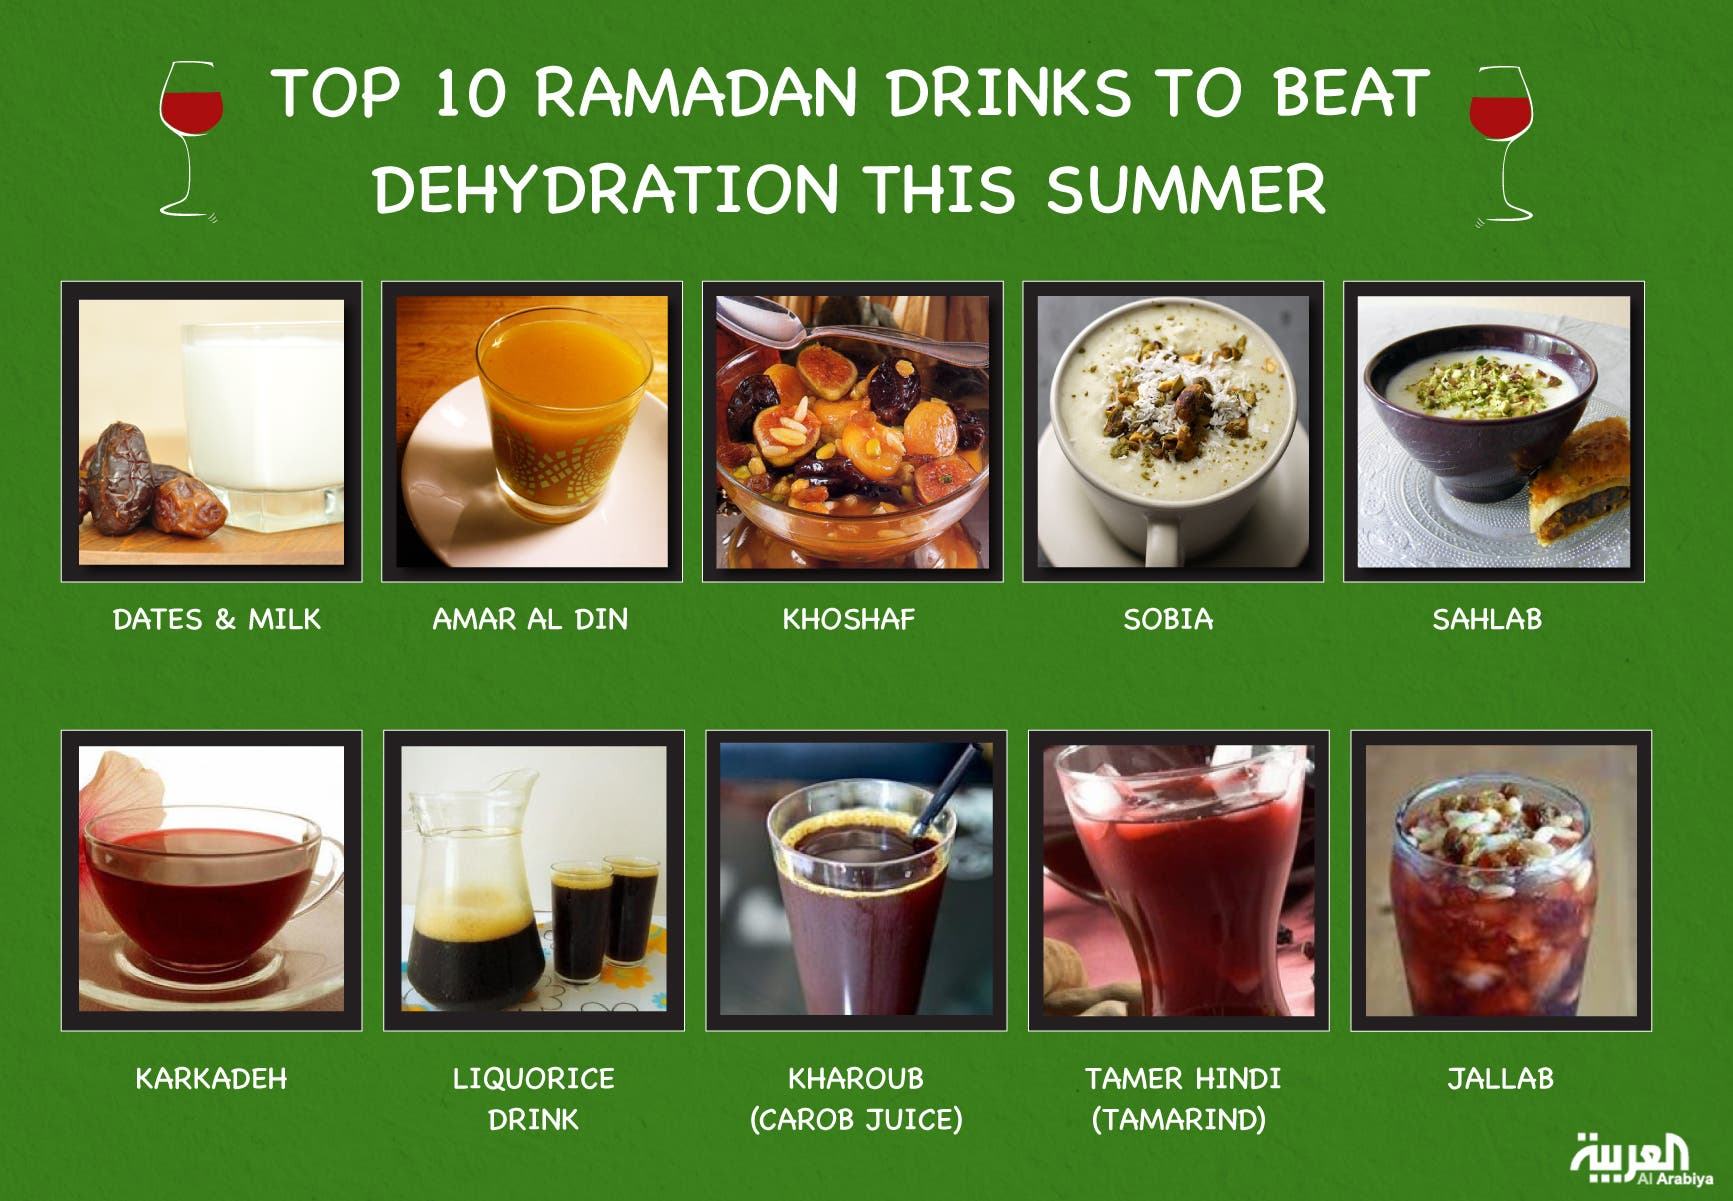 Top 10 Ramadan drinks to beat dehydration this summer - Al Arabiya English